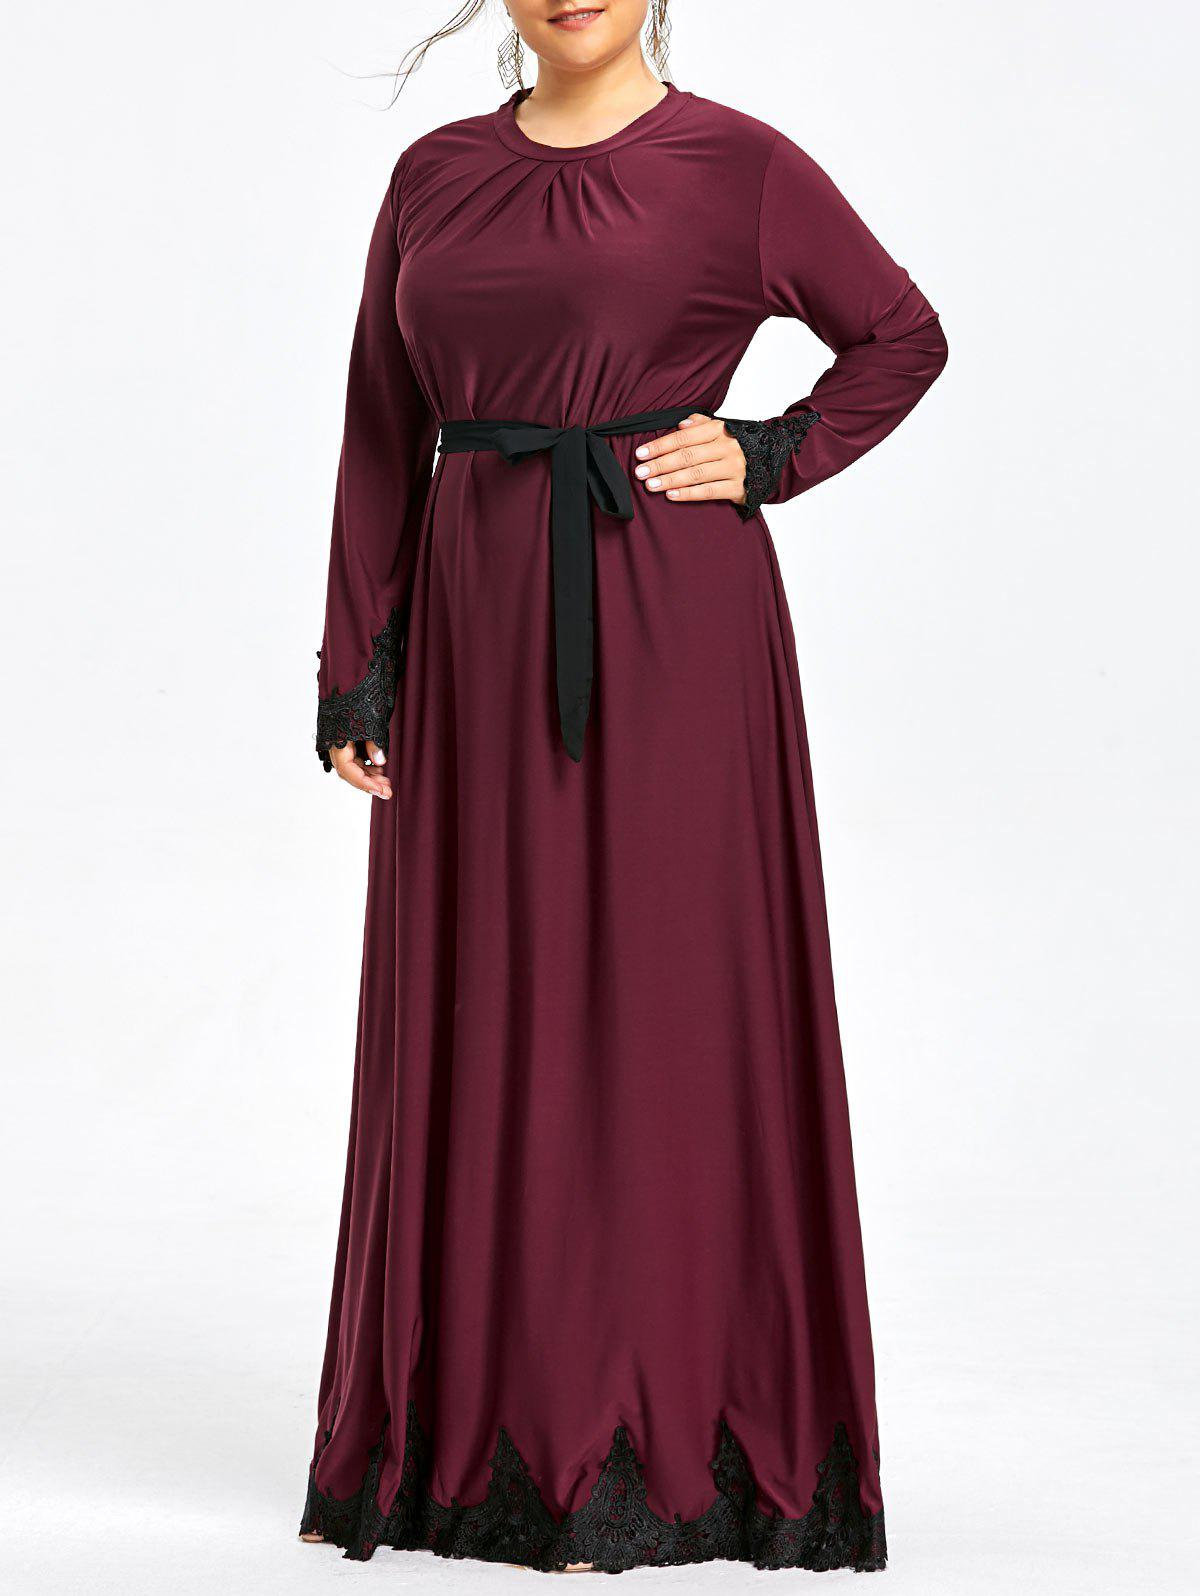 2018 Plus Size Lace Trim Long Sleeve Maxi Dress Burgundy Xl In